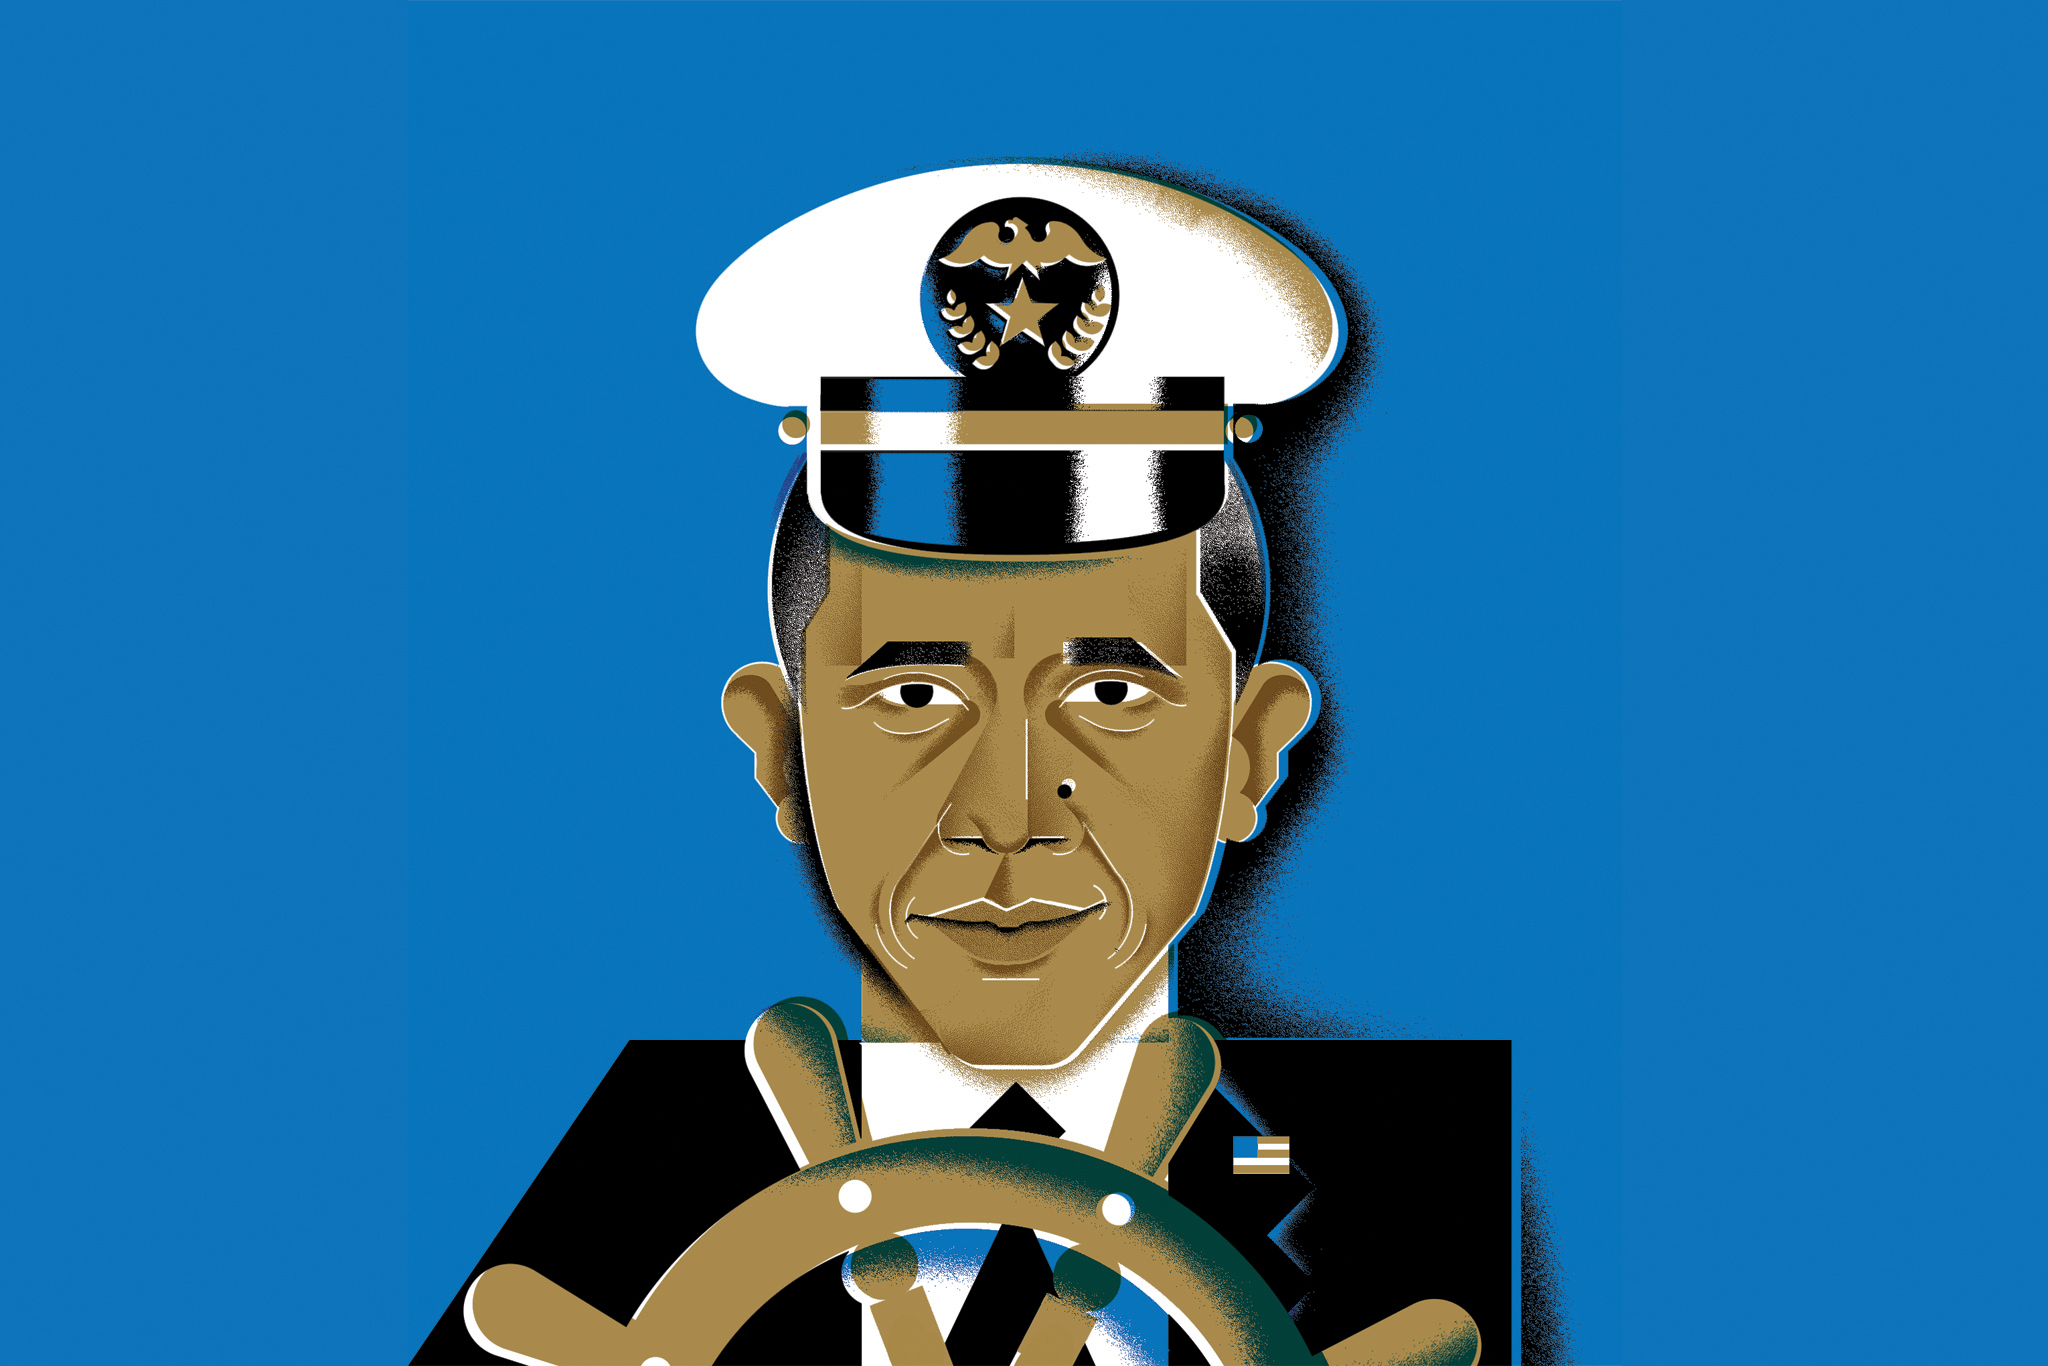 Illustration: Barak Obama